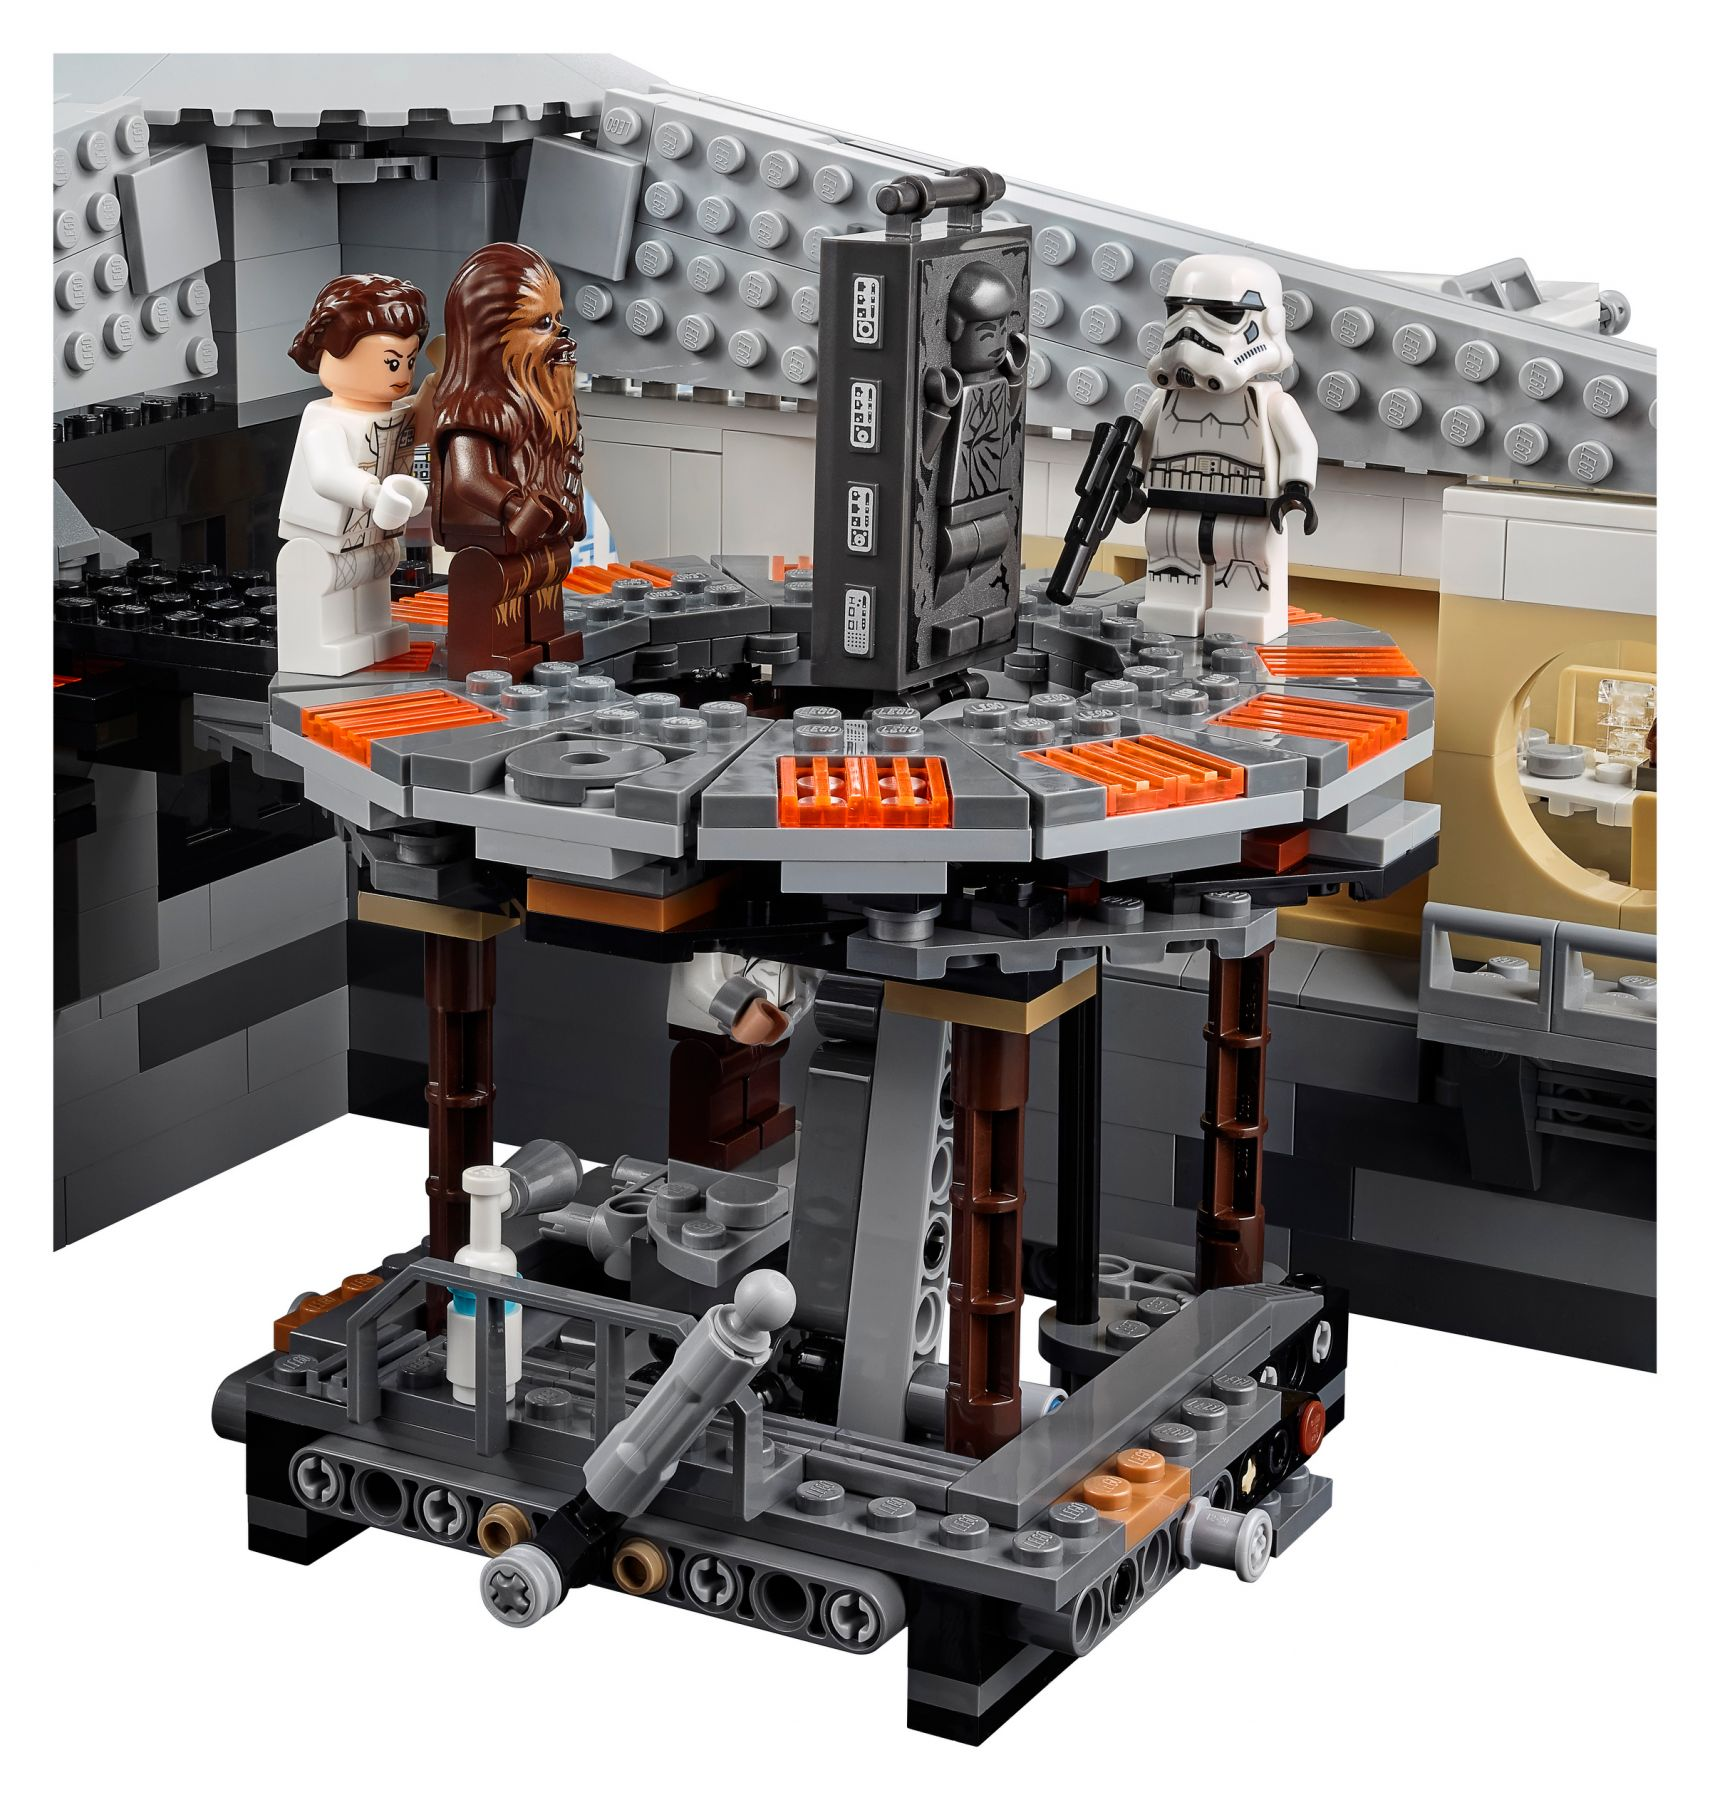 LEGO Star Wars 75222 Verrat in Cloud City™ LEGO_75222_alt6.jpg